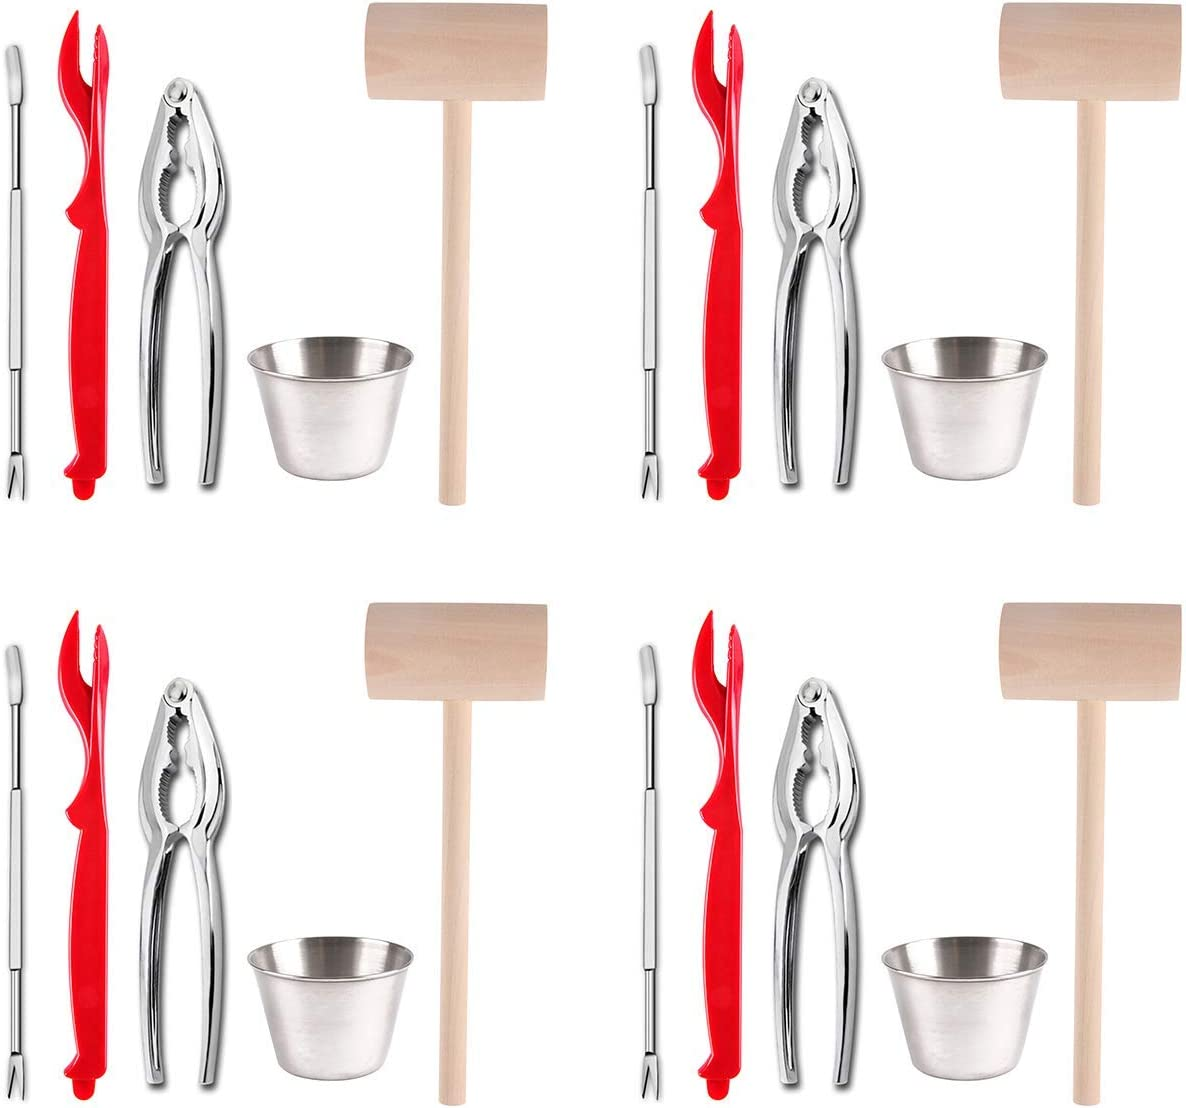 Artcome 22 Piece Seafood Tools Set for 4 People Including 4 Lobster Crab Crackers 4 Lobster Shellers 6 Seafood Forks 4 Sauce Cups and 4 Lobster Crab Mallets